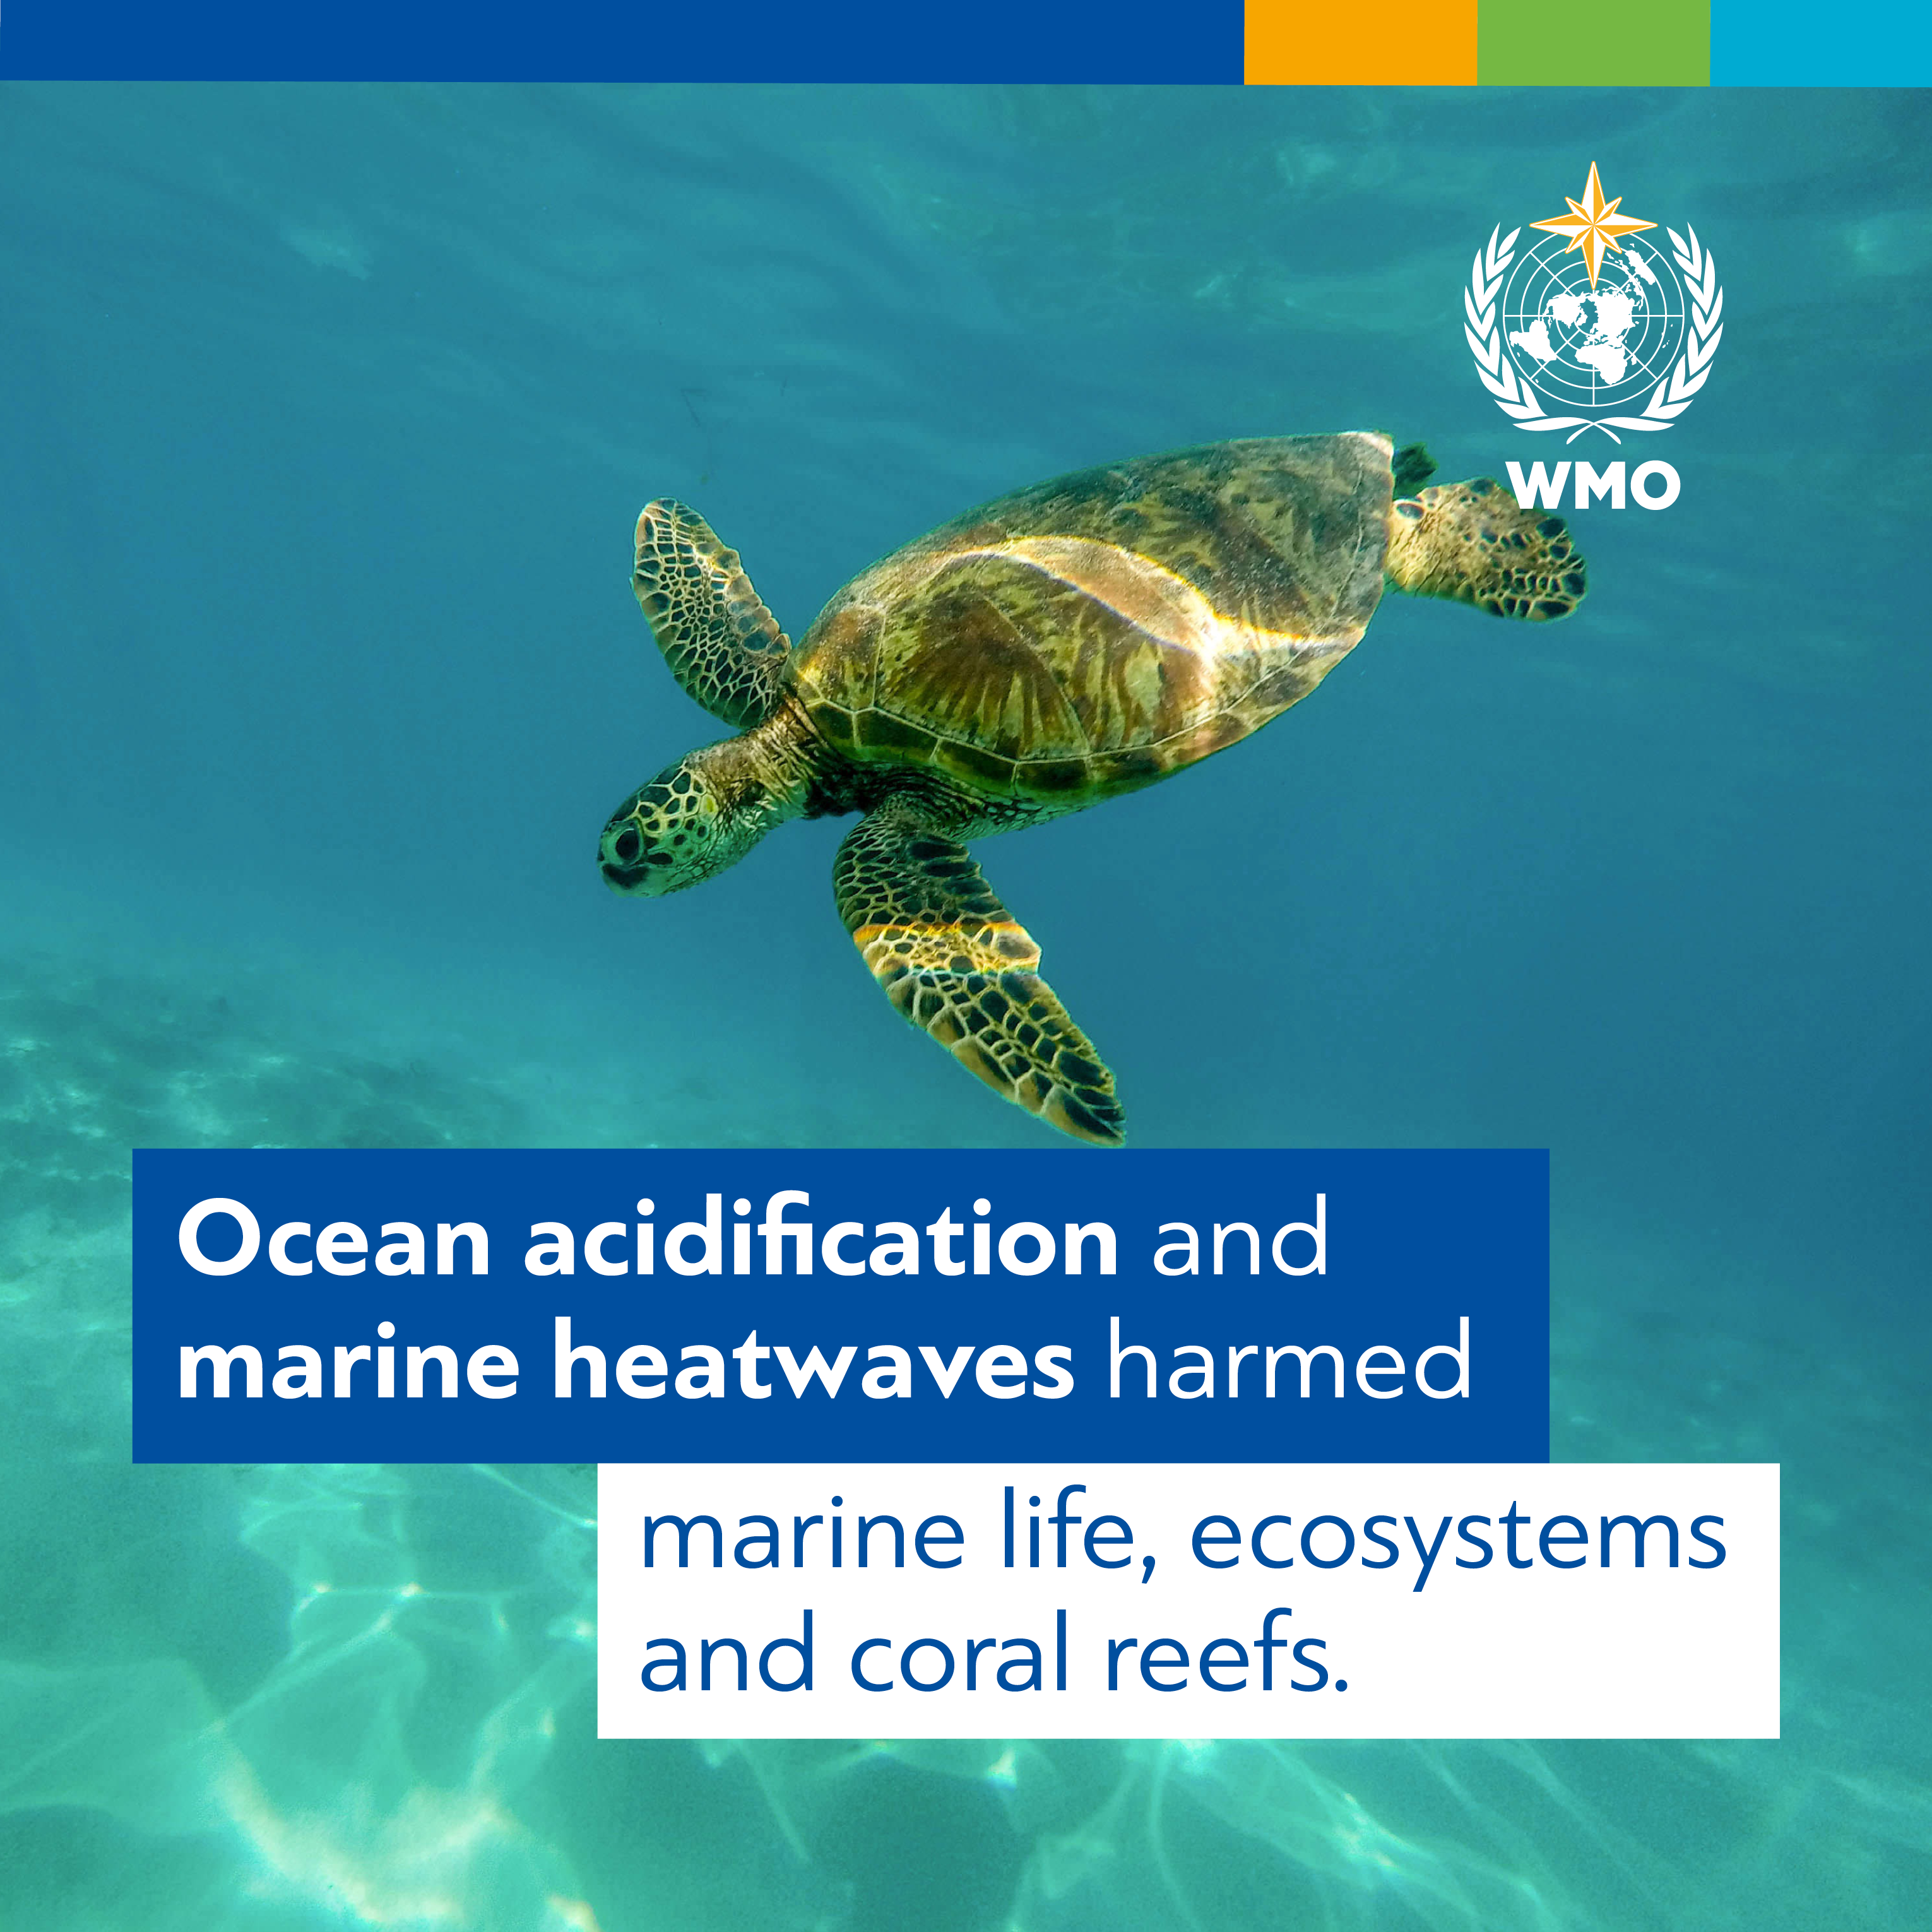 State_of_the_Climate_Digital_Card_Ocean_acidification_and_marine_heatwaves